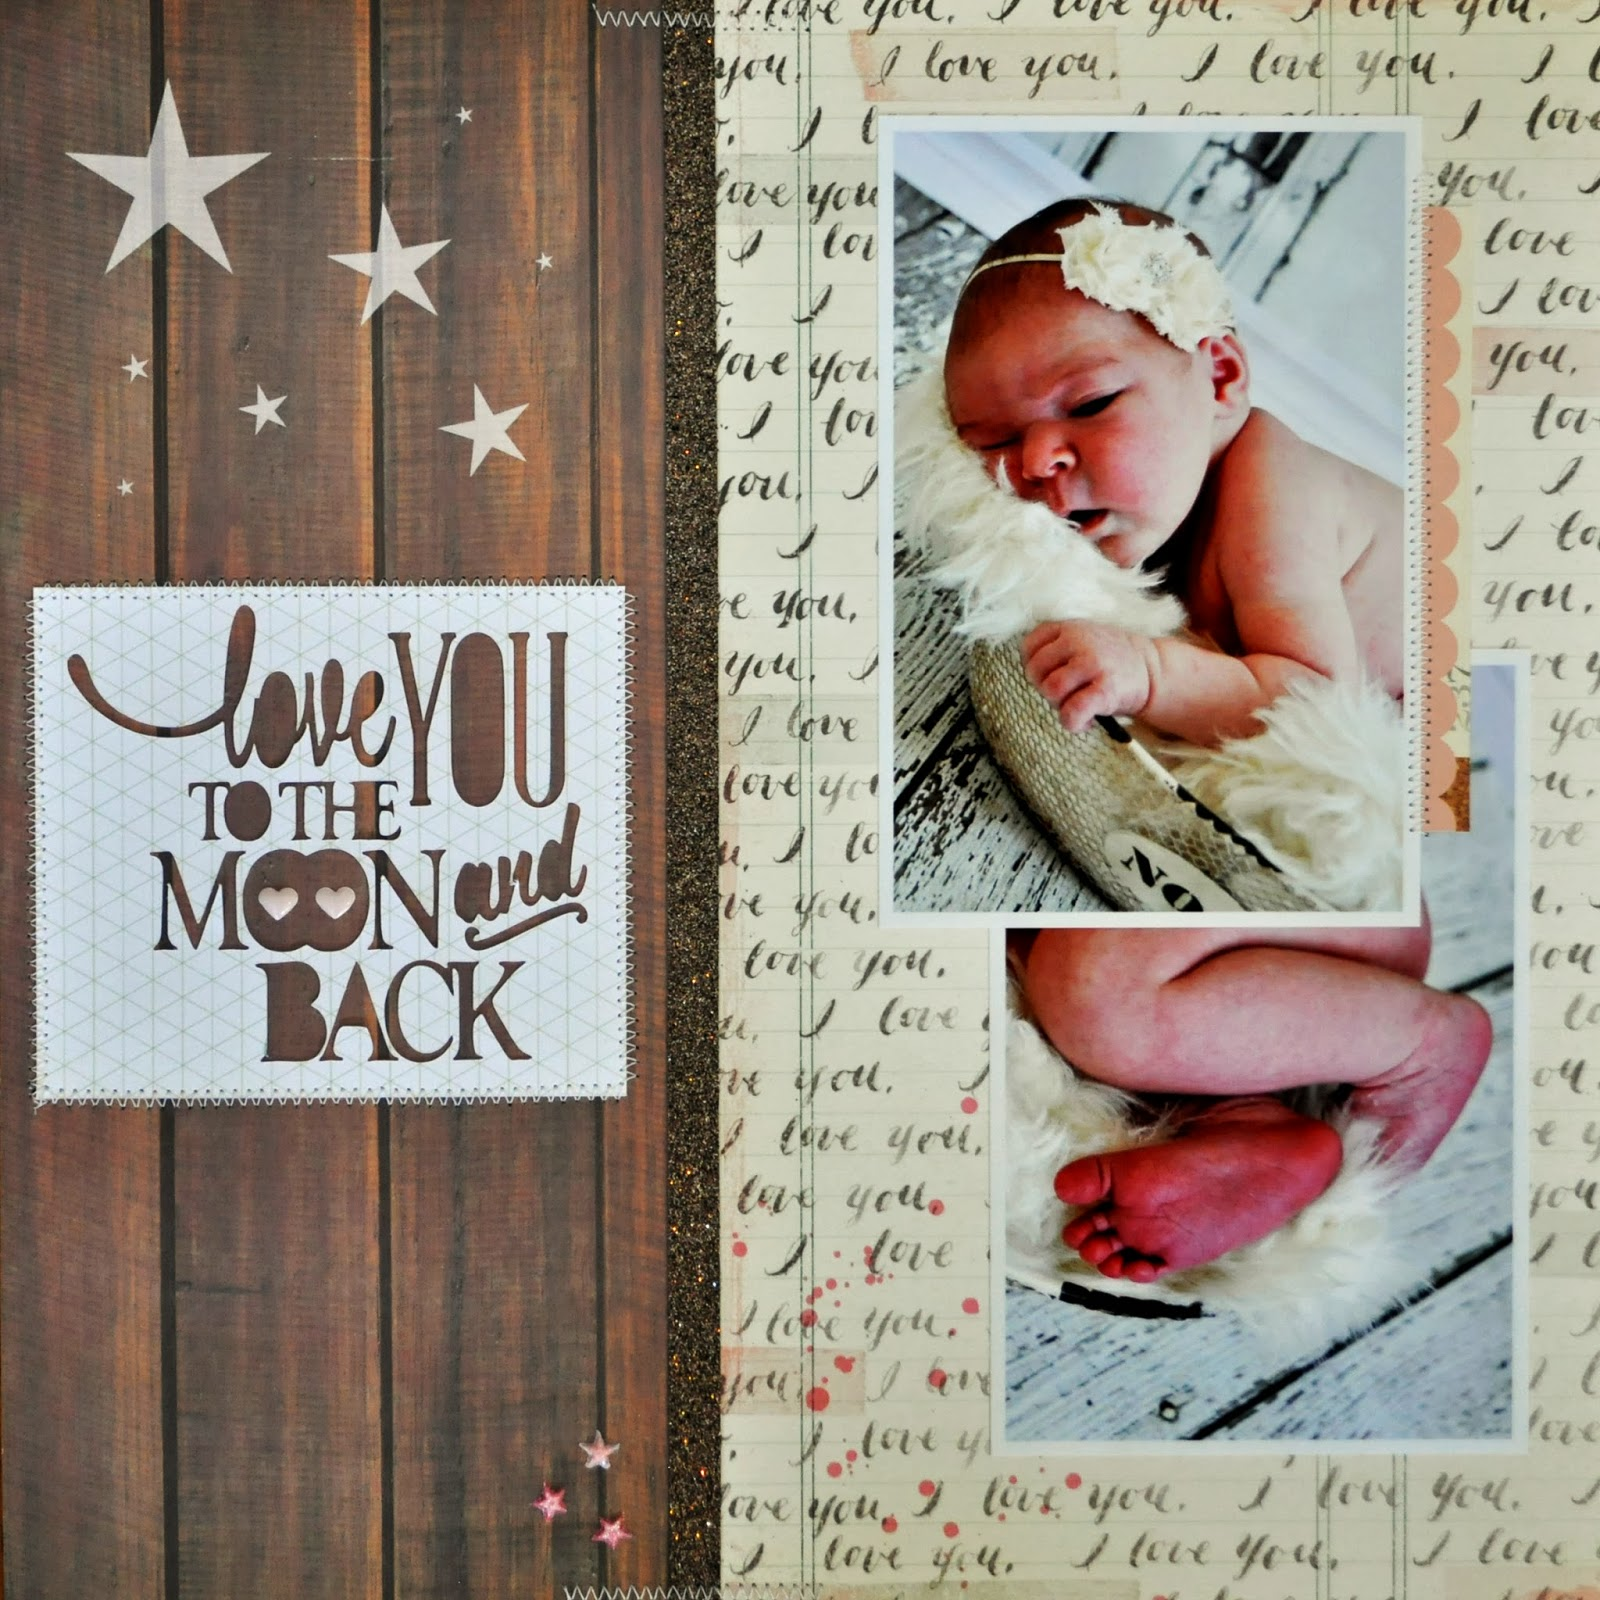 love you to the moon and back scrapbook page 12 x12 inspiration layout silouhette cut file title phrase baby photos brown wood panel i love you cream ivory pink glitter ribbon